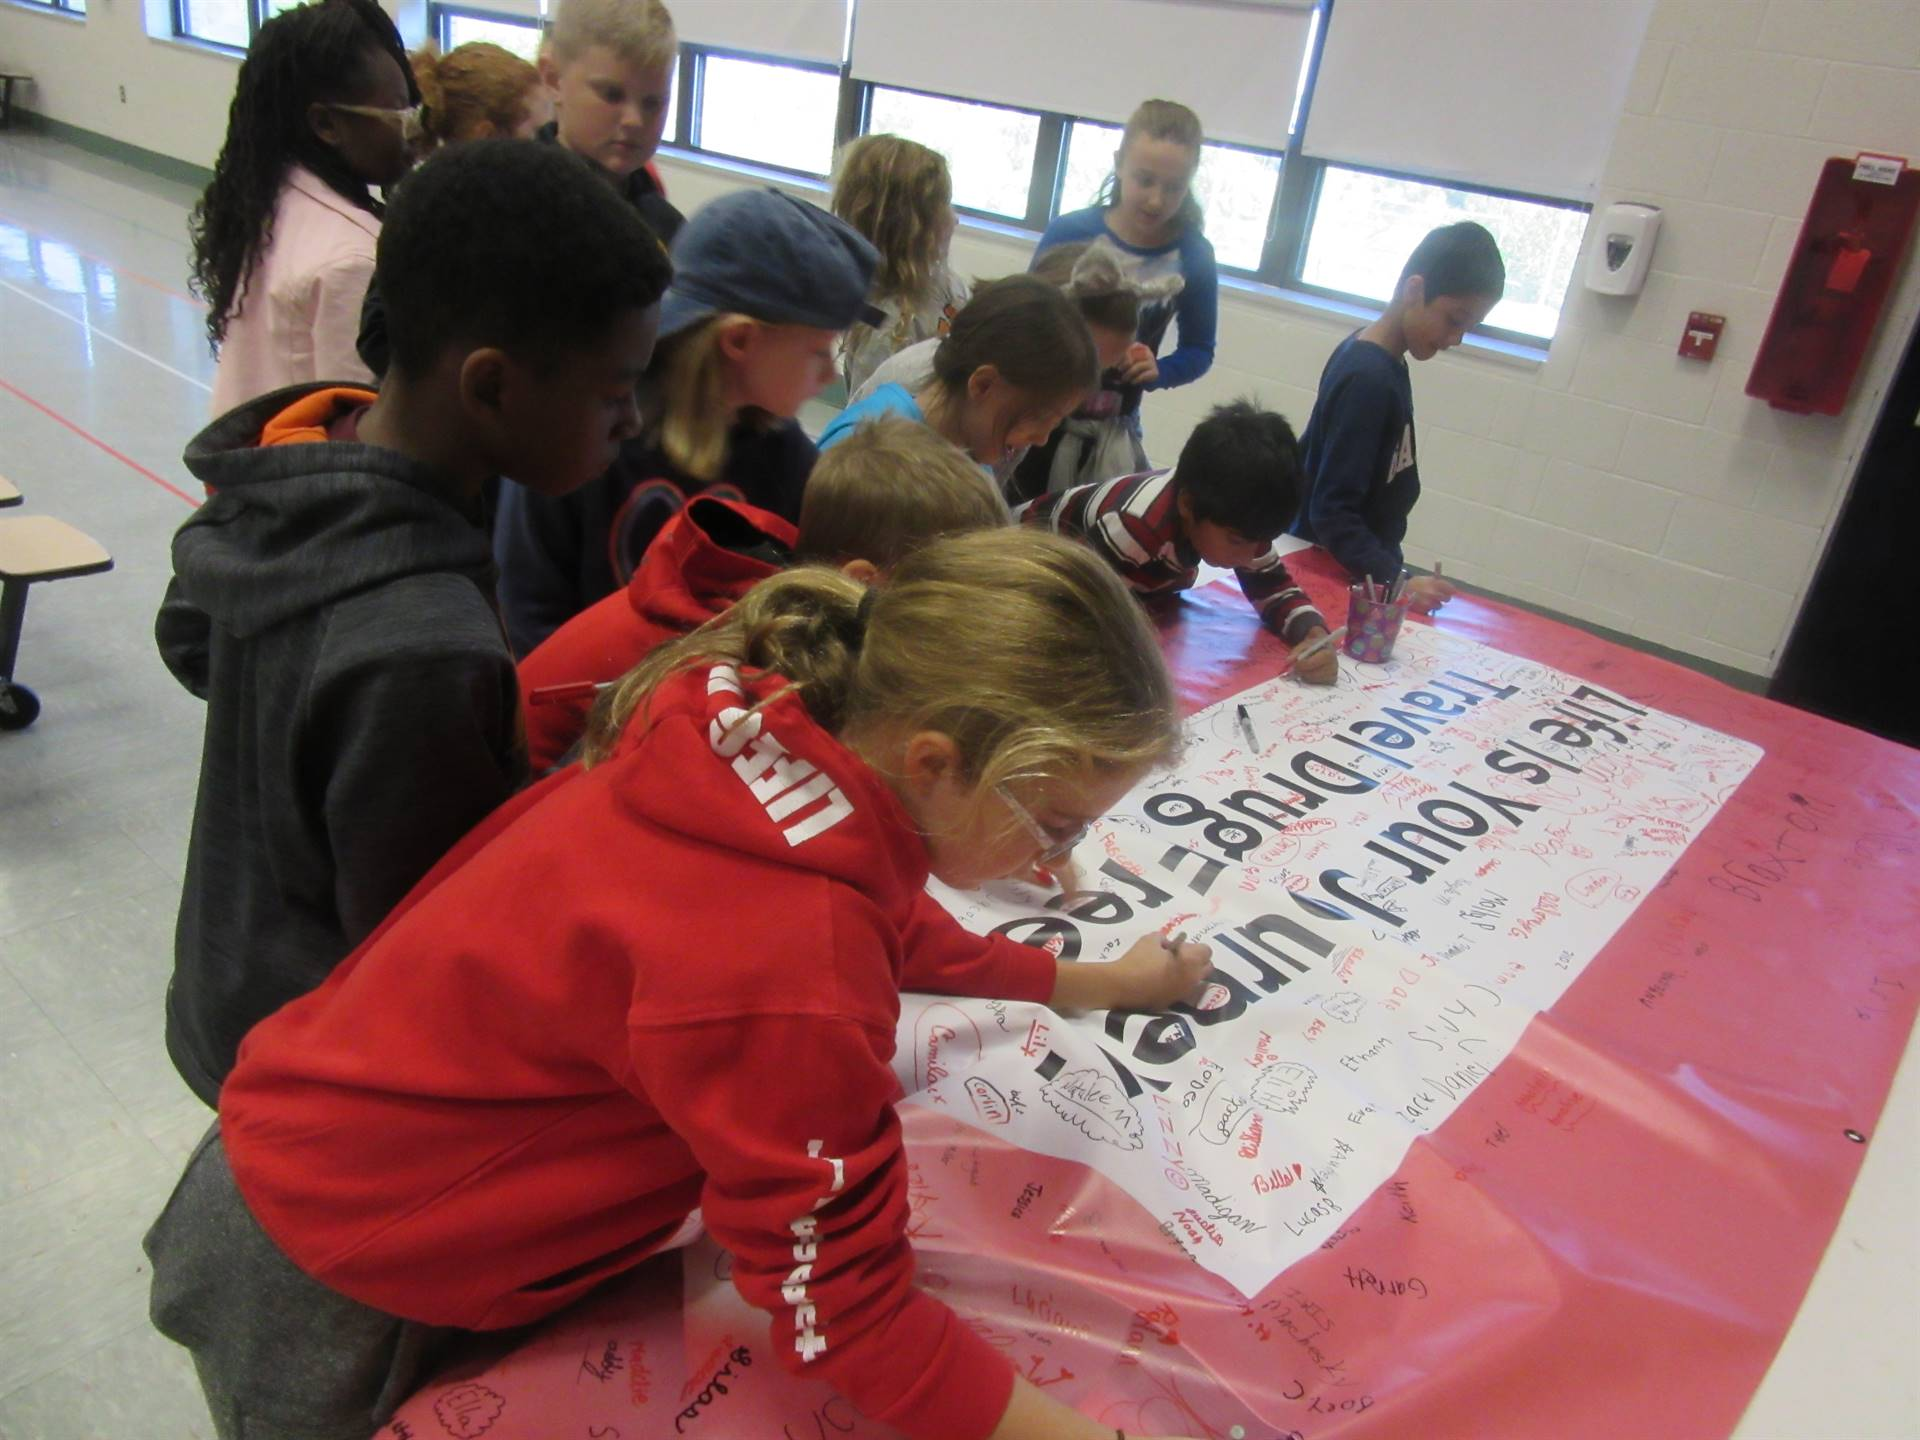 Signing red ribbon pledge